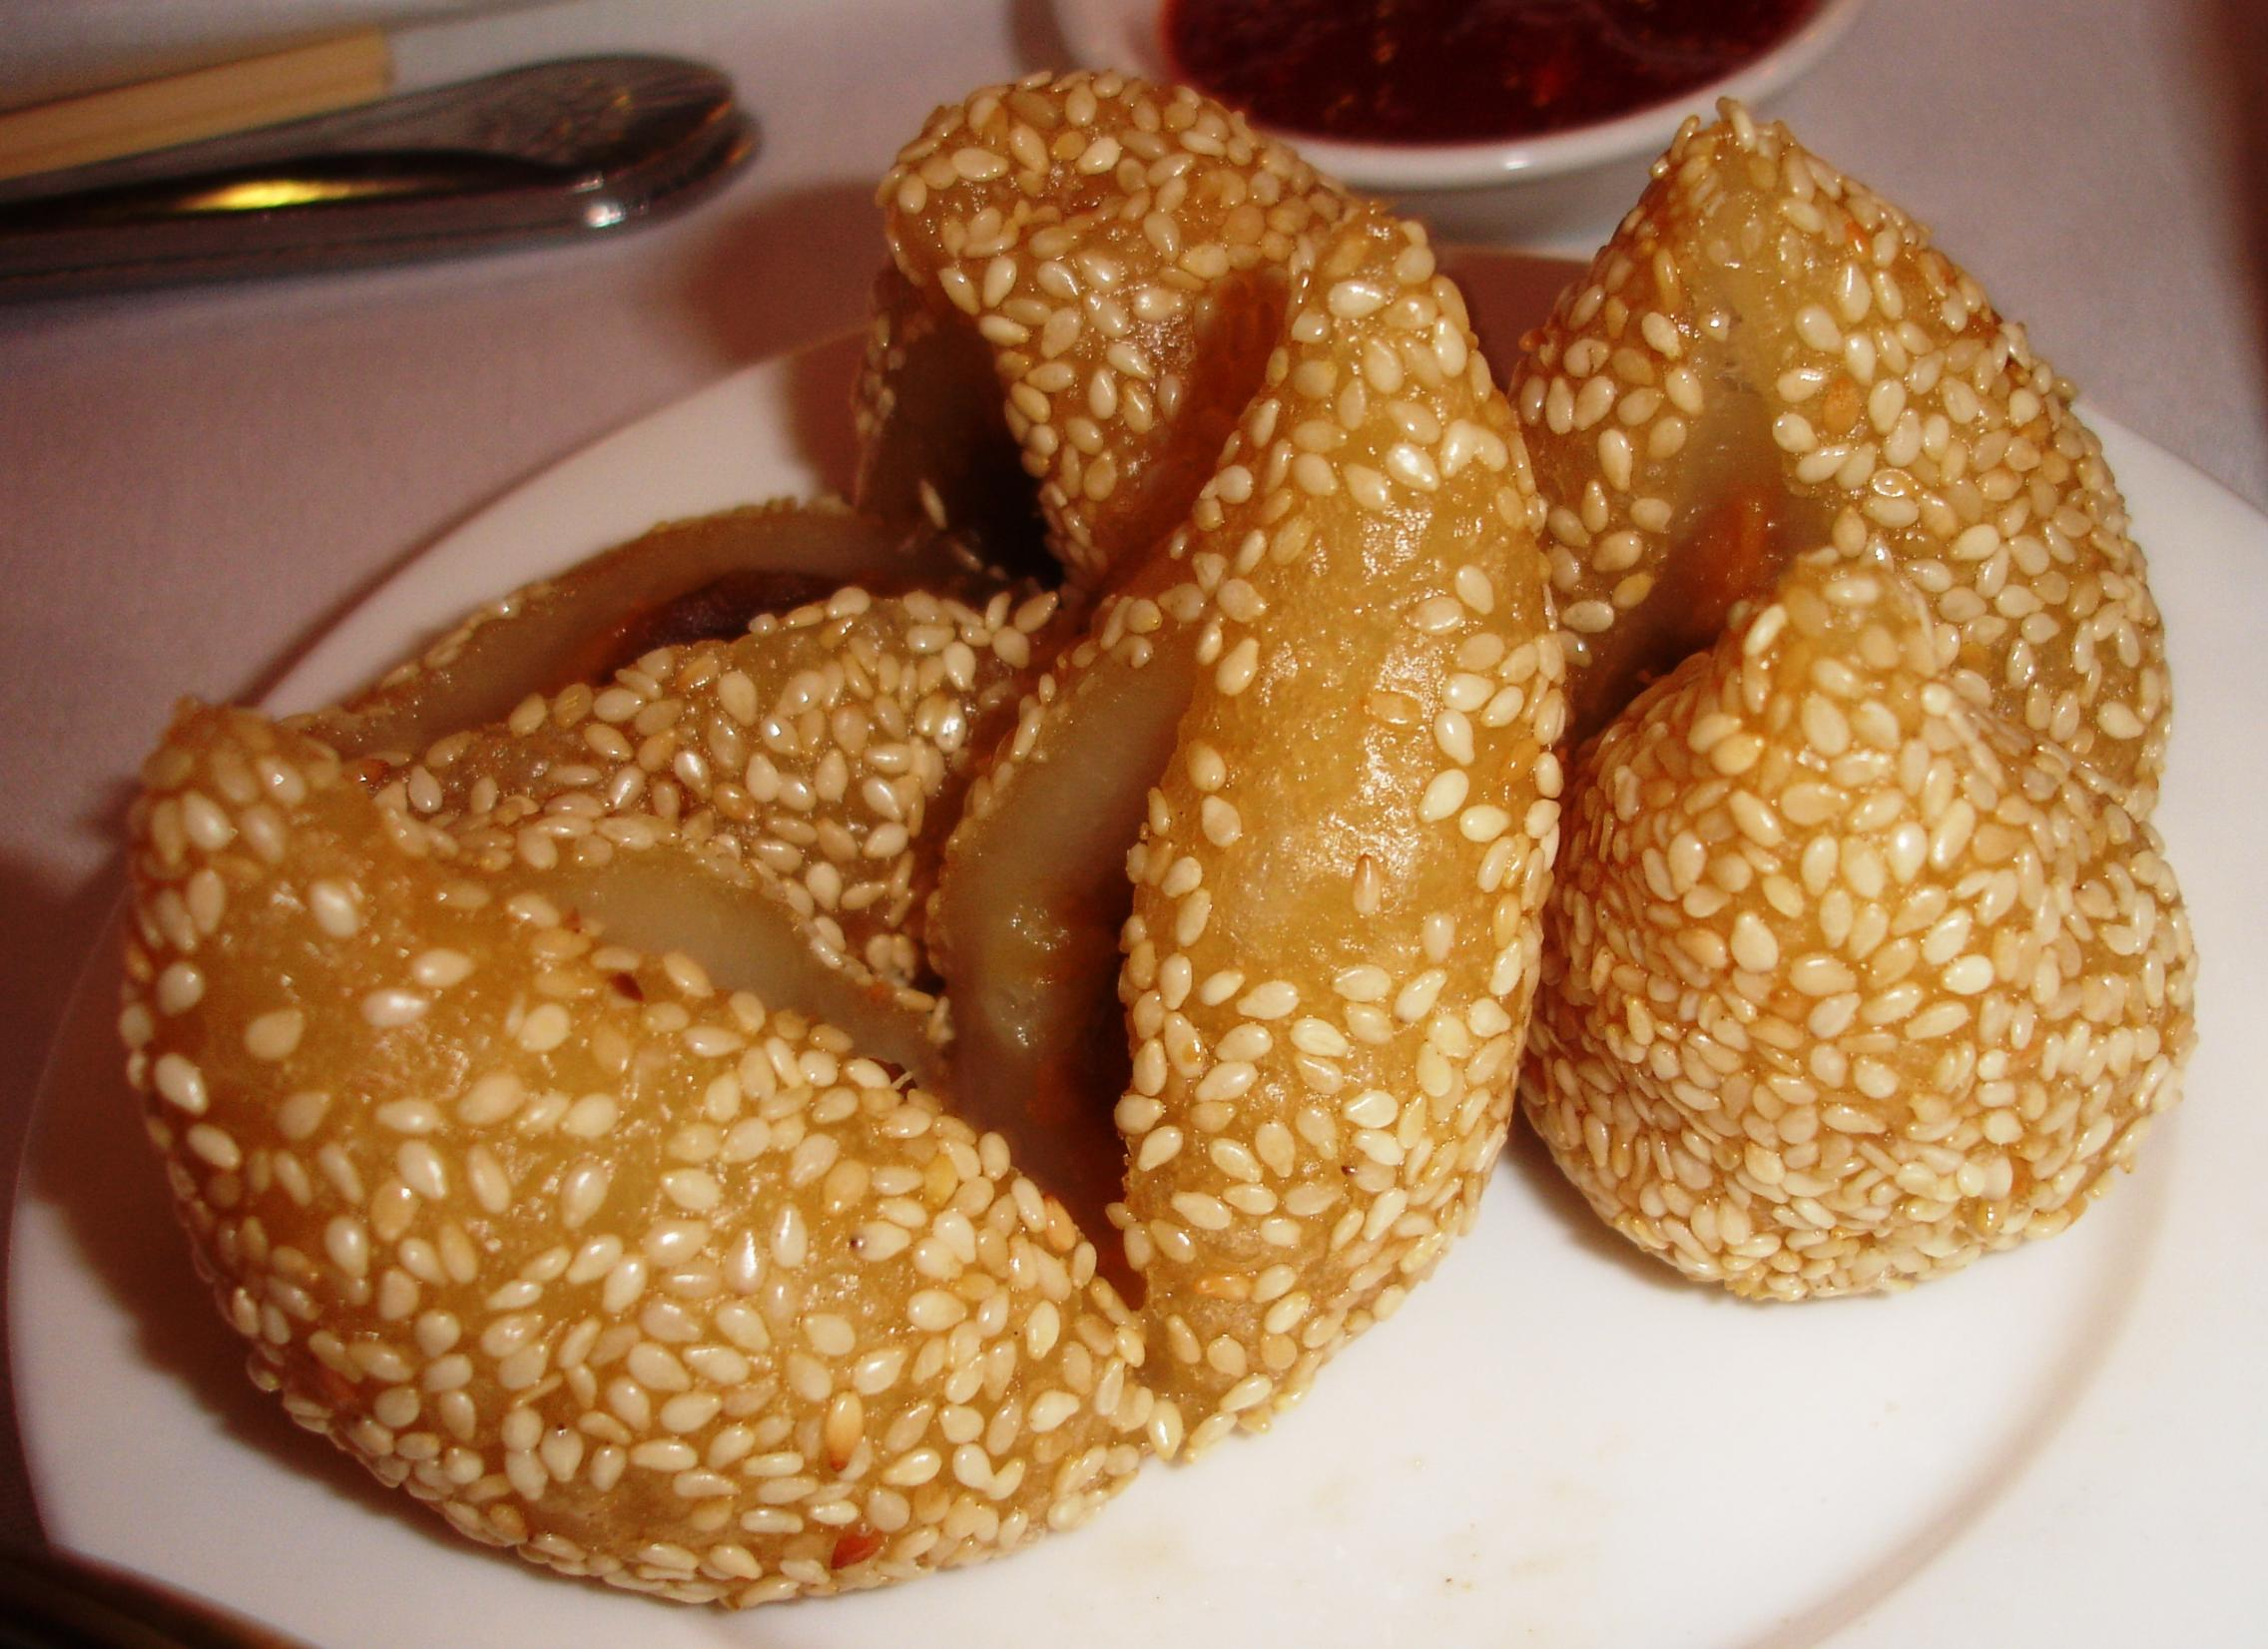 Fried sesame balls filled with a sweetened bean paste are a dessert.